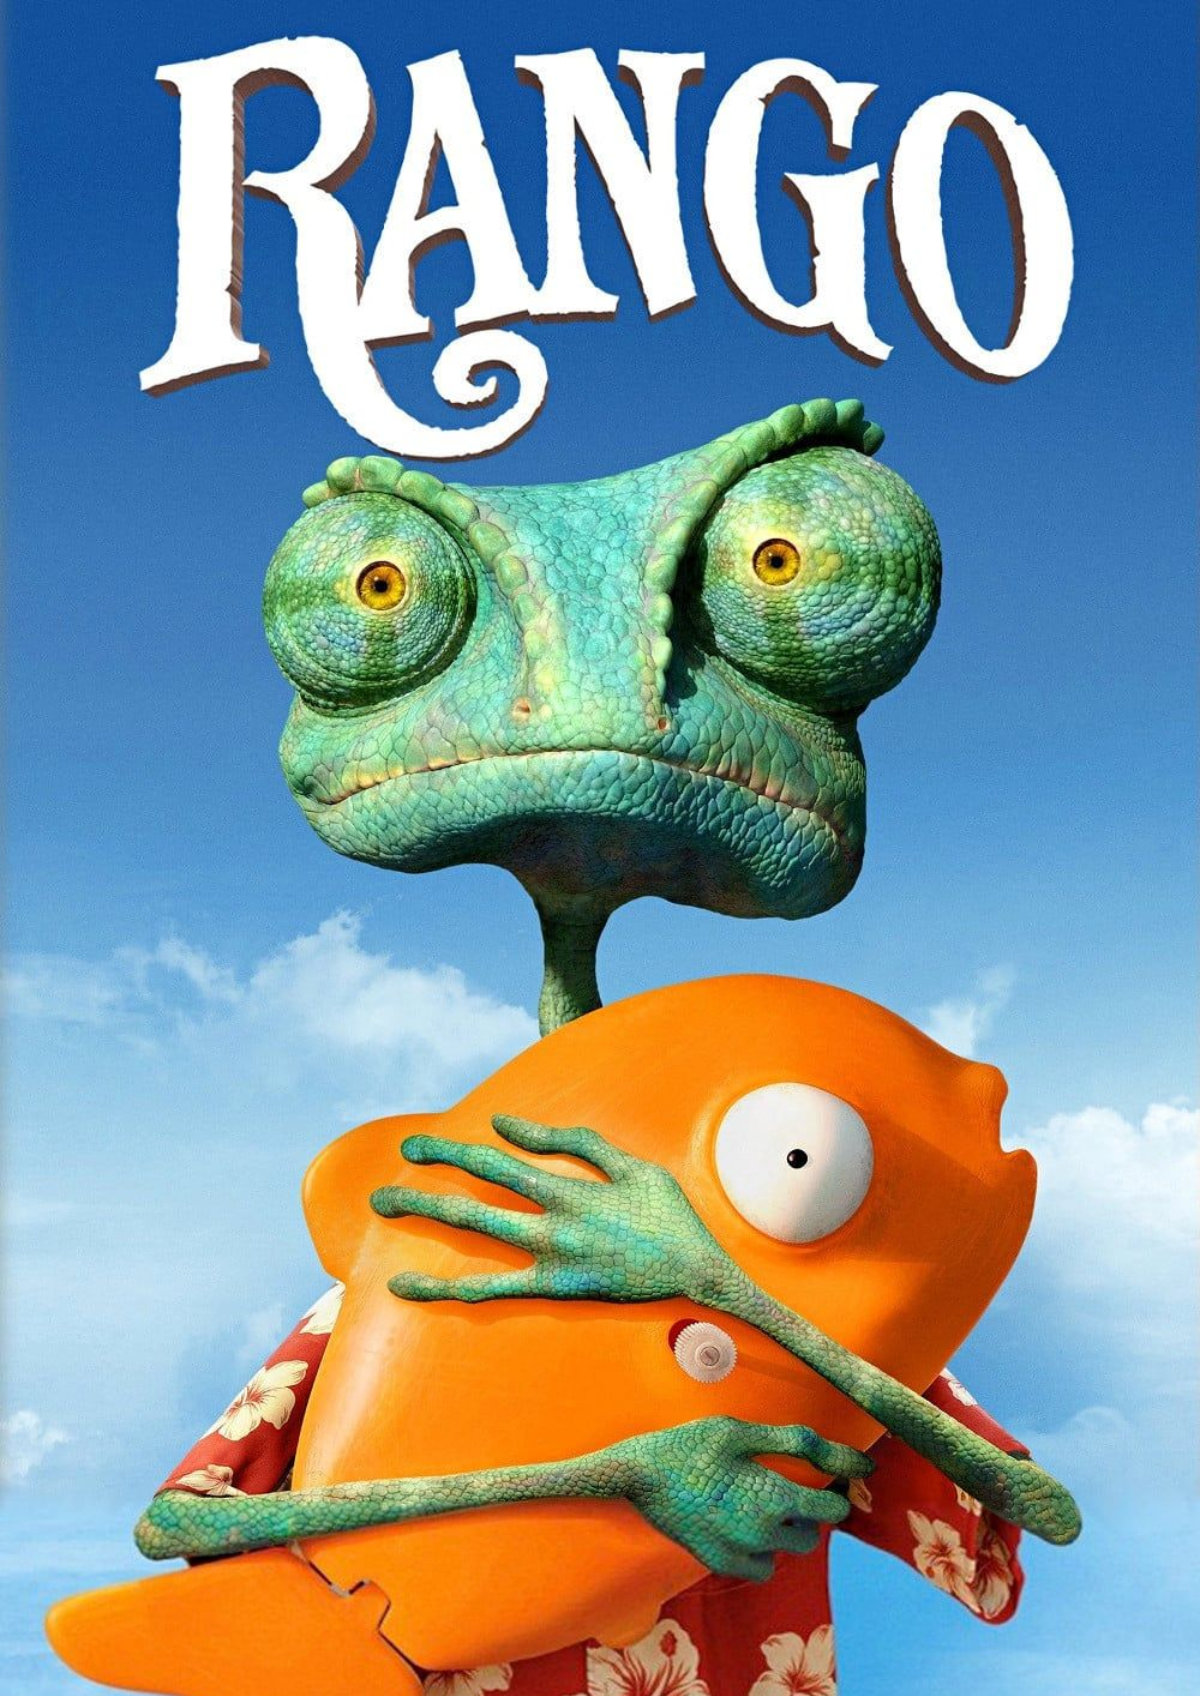 'Rango' movie poster